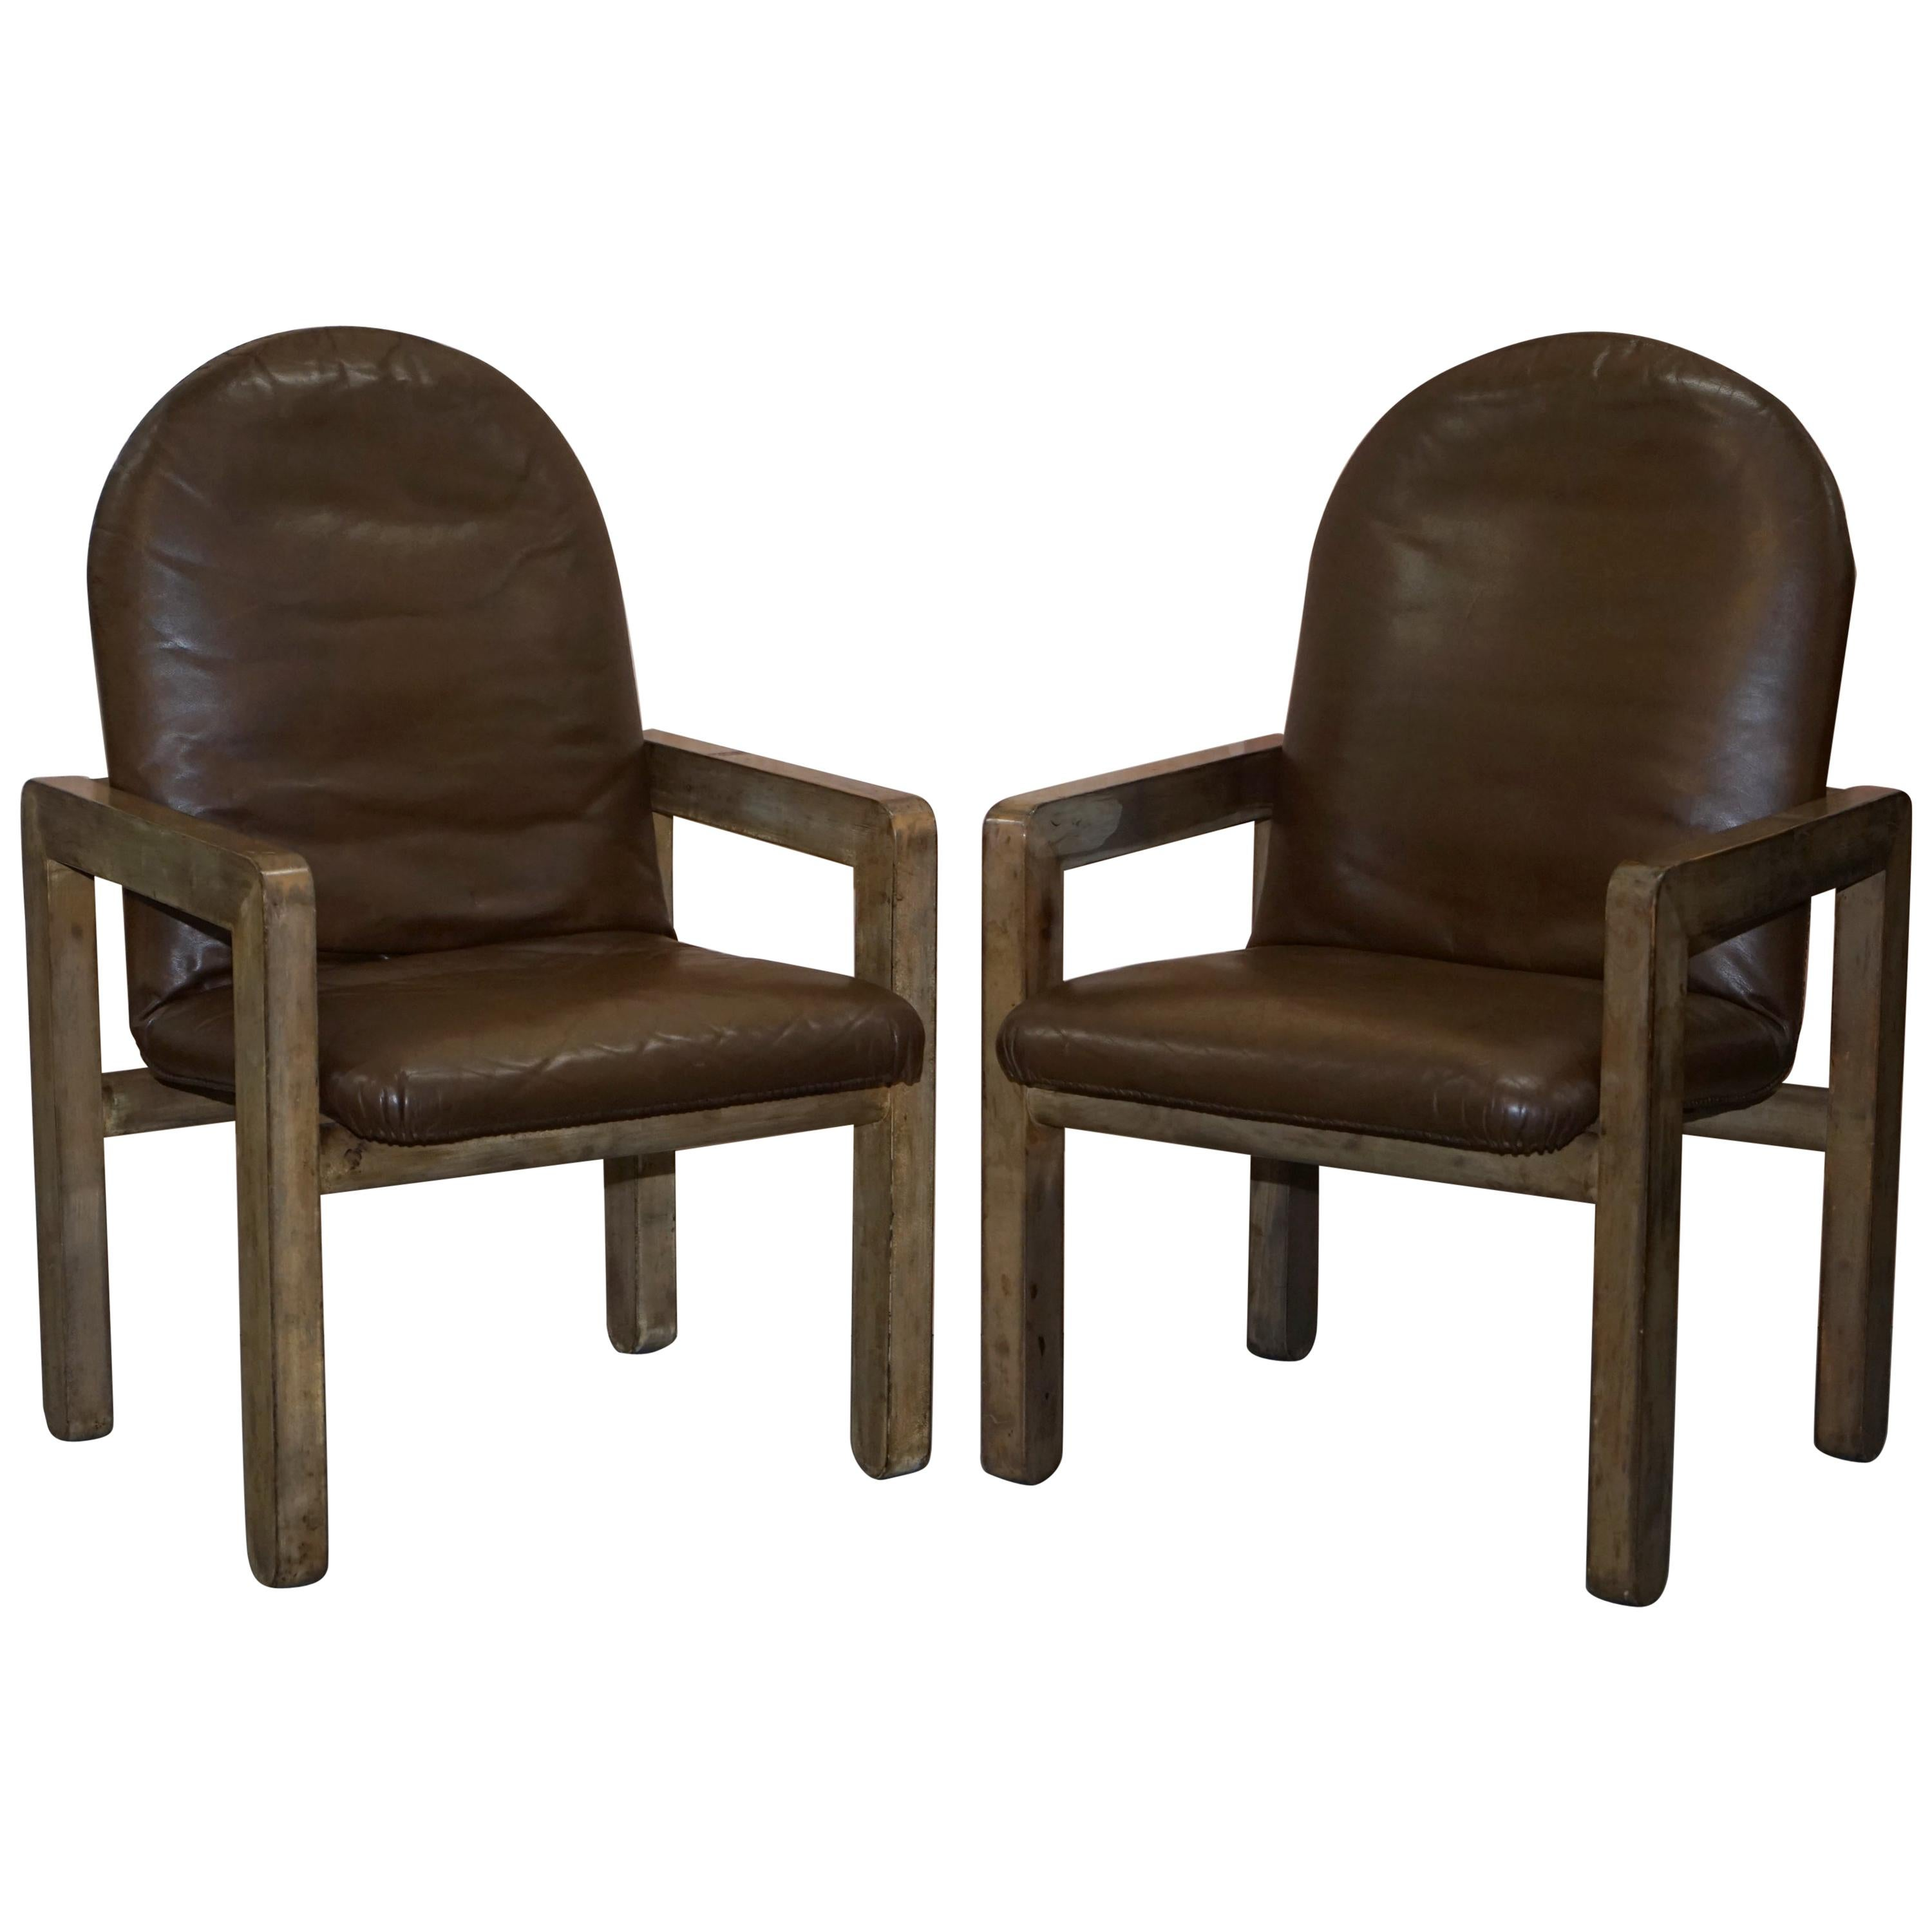 Pair of Original Midcentury Vintage Aged Brown Leather John Makepeace Armchairs